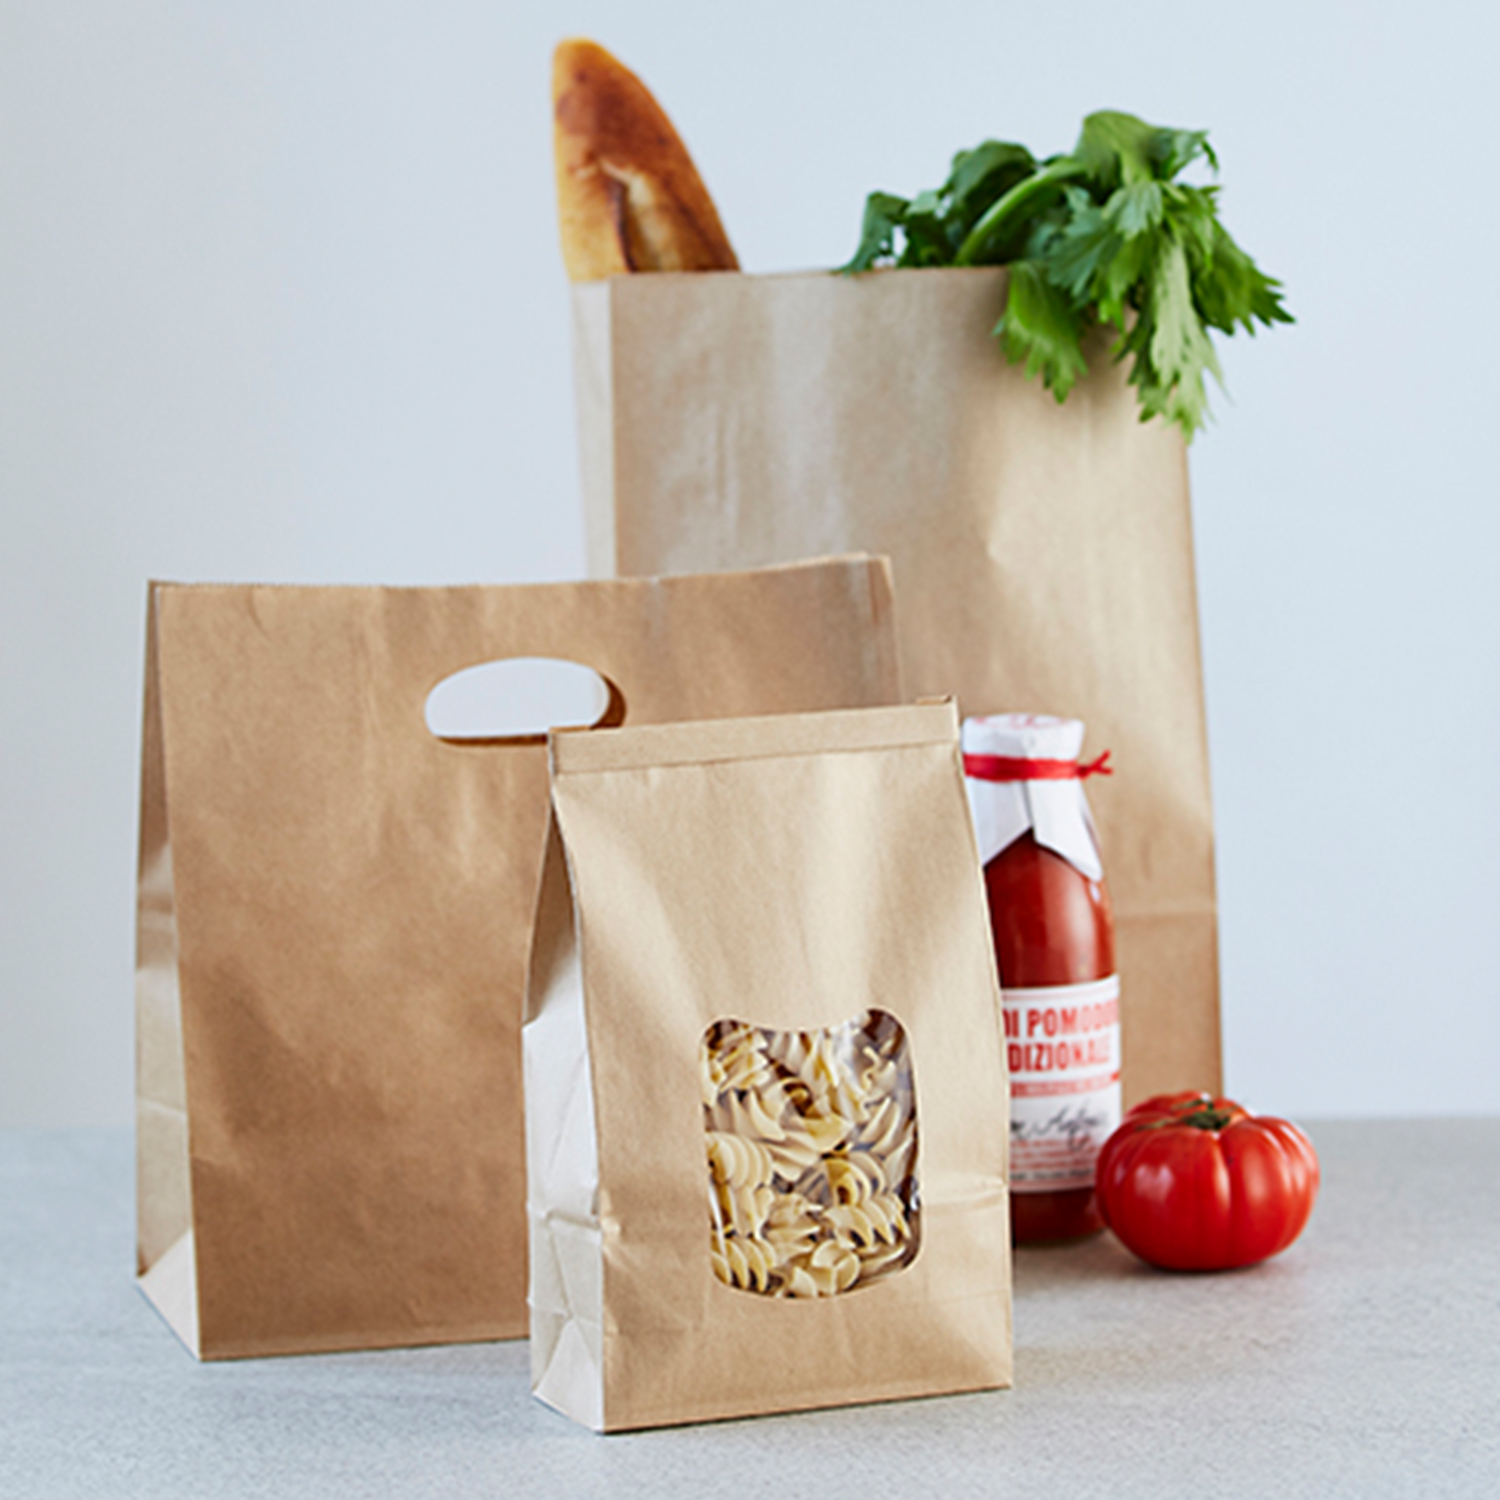 Image of three paper bags with groceries inside